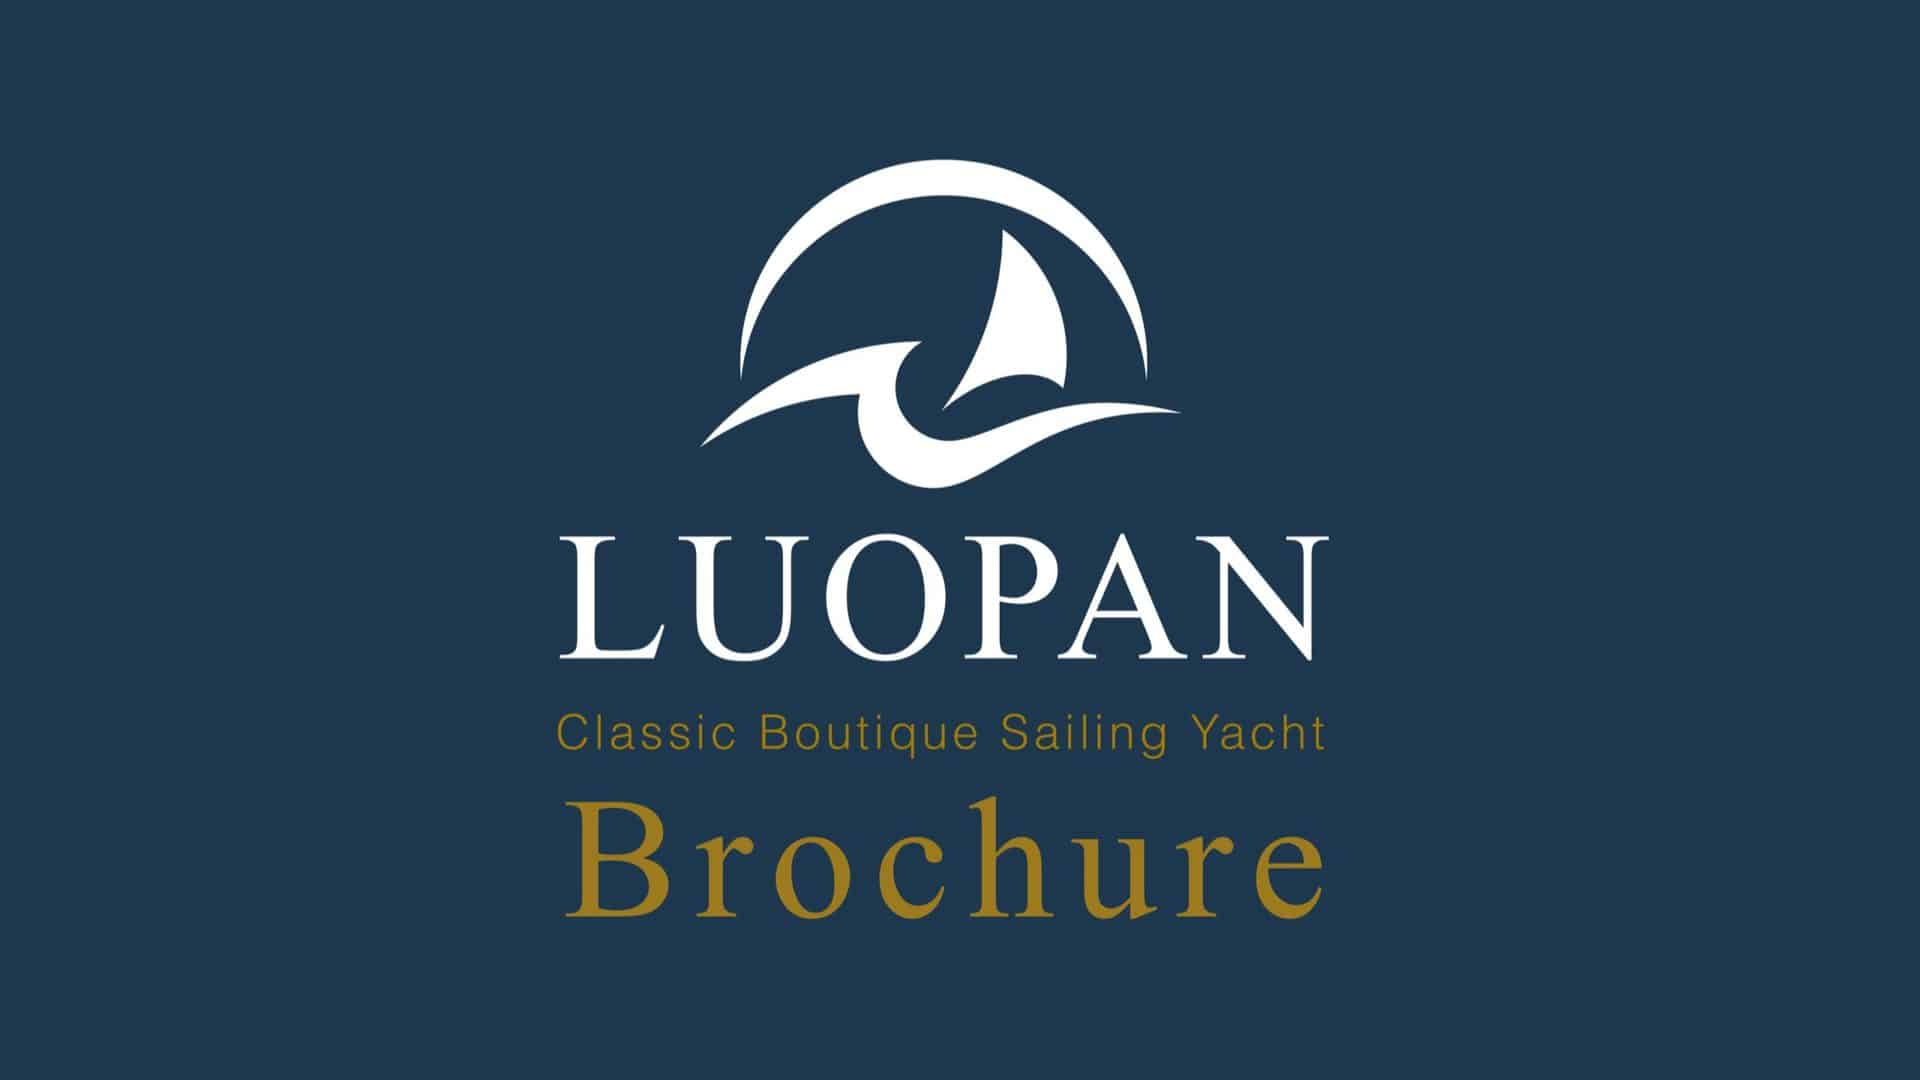 The Boutique Yacht LUOPAN